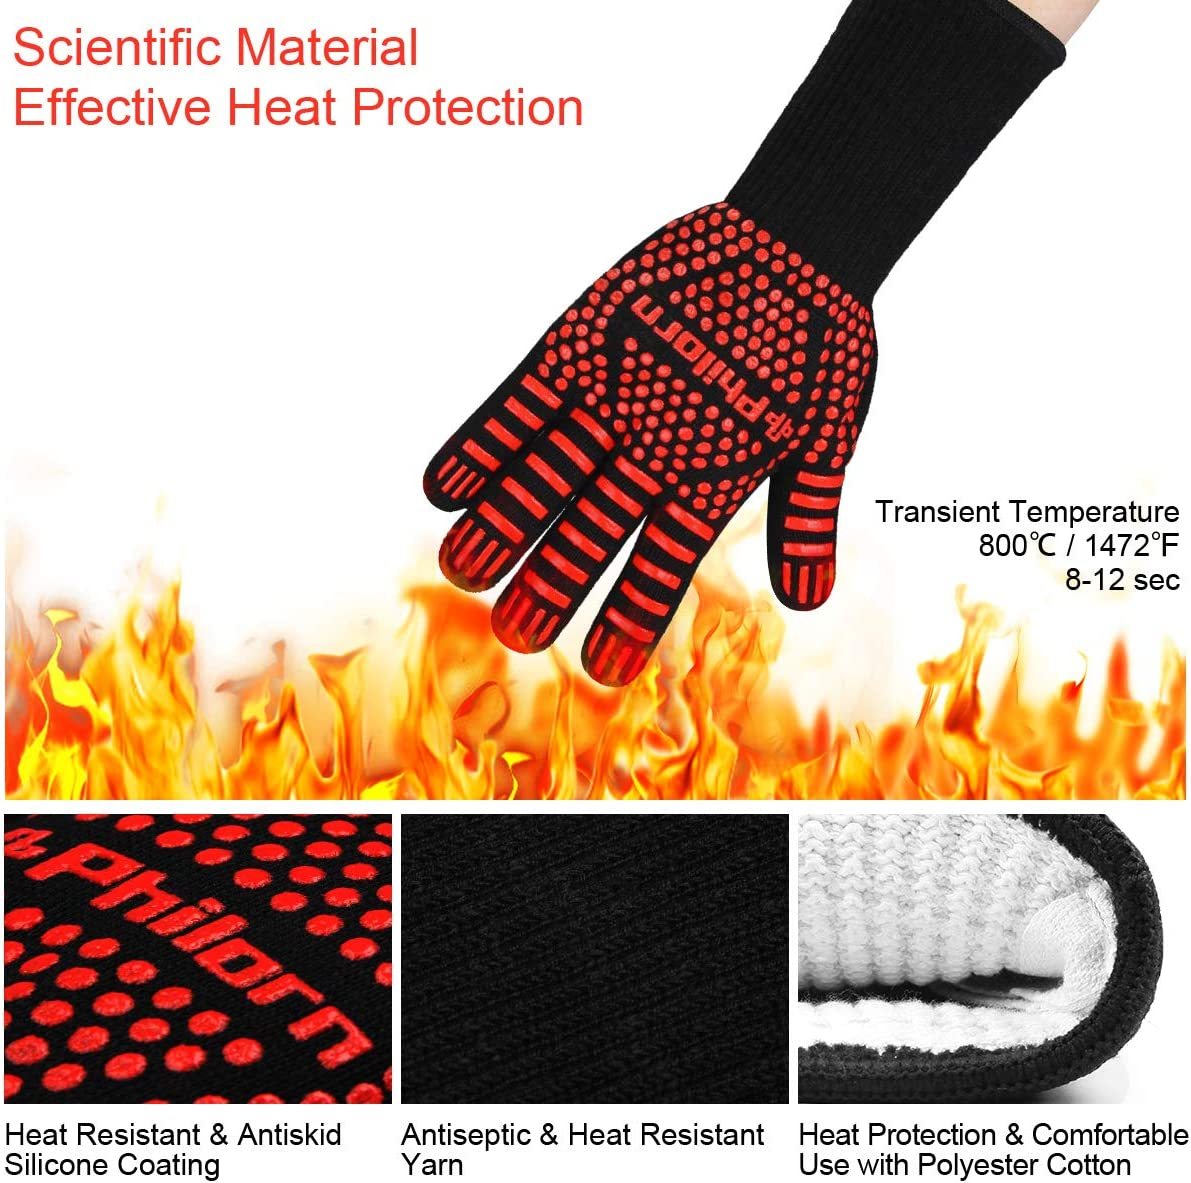 PHILORN 1472/°F Heat Resistant Grilling Glove with Silicone BBQ Brush Five Fingers Knitting Oven Gloves Kitchen Outdoor Cooking Mitts 1 Pair Black